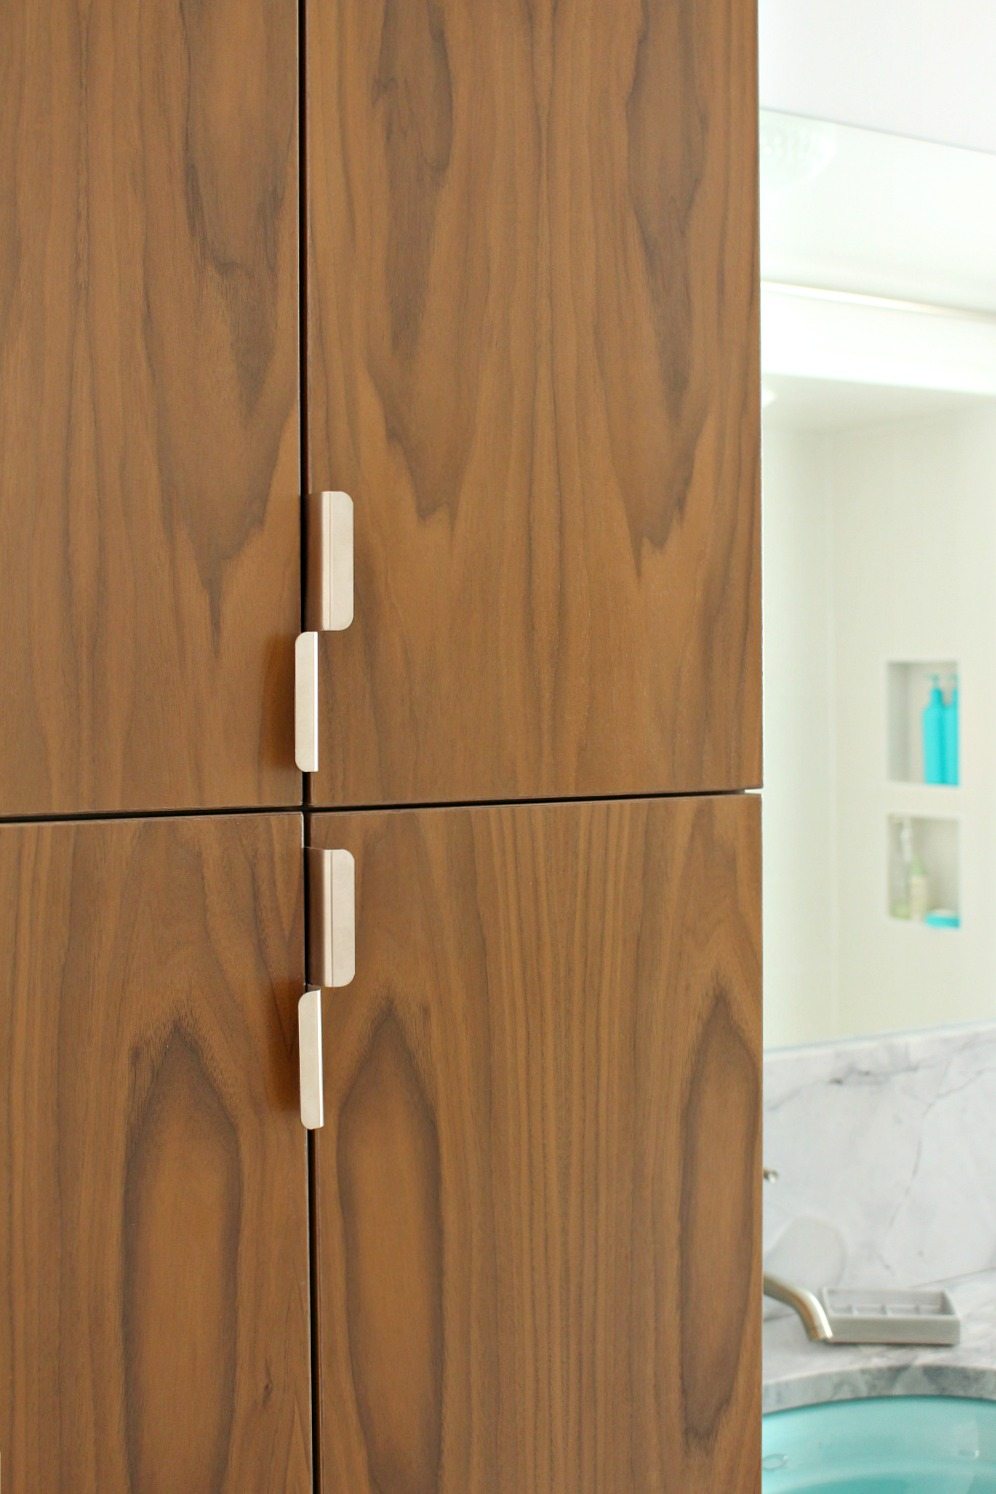 Vertical pulls on tall cabinet doors